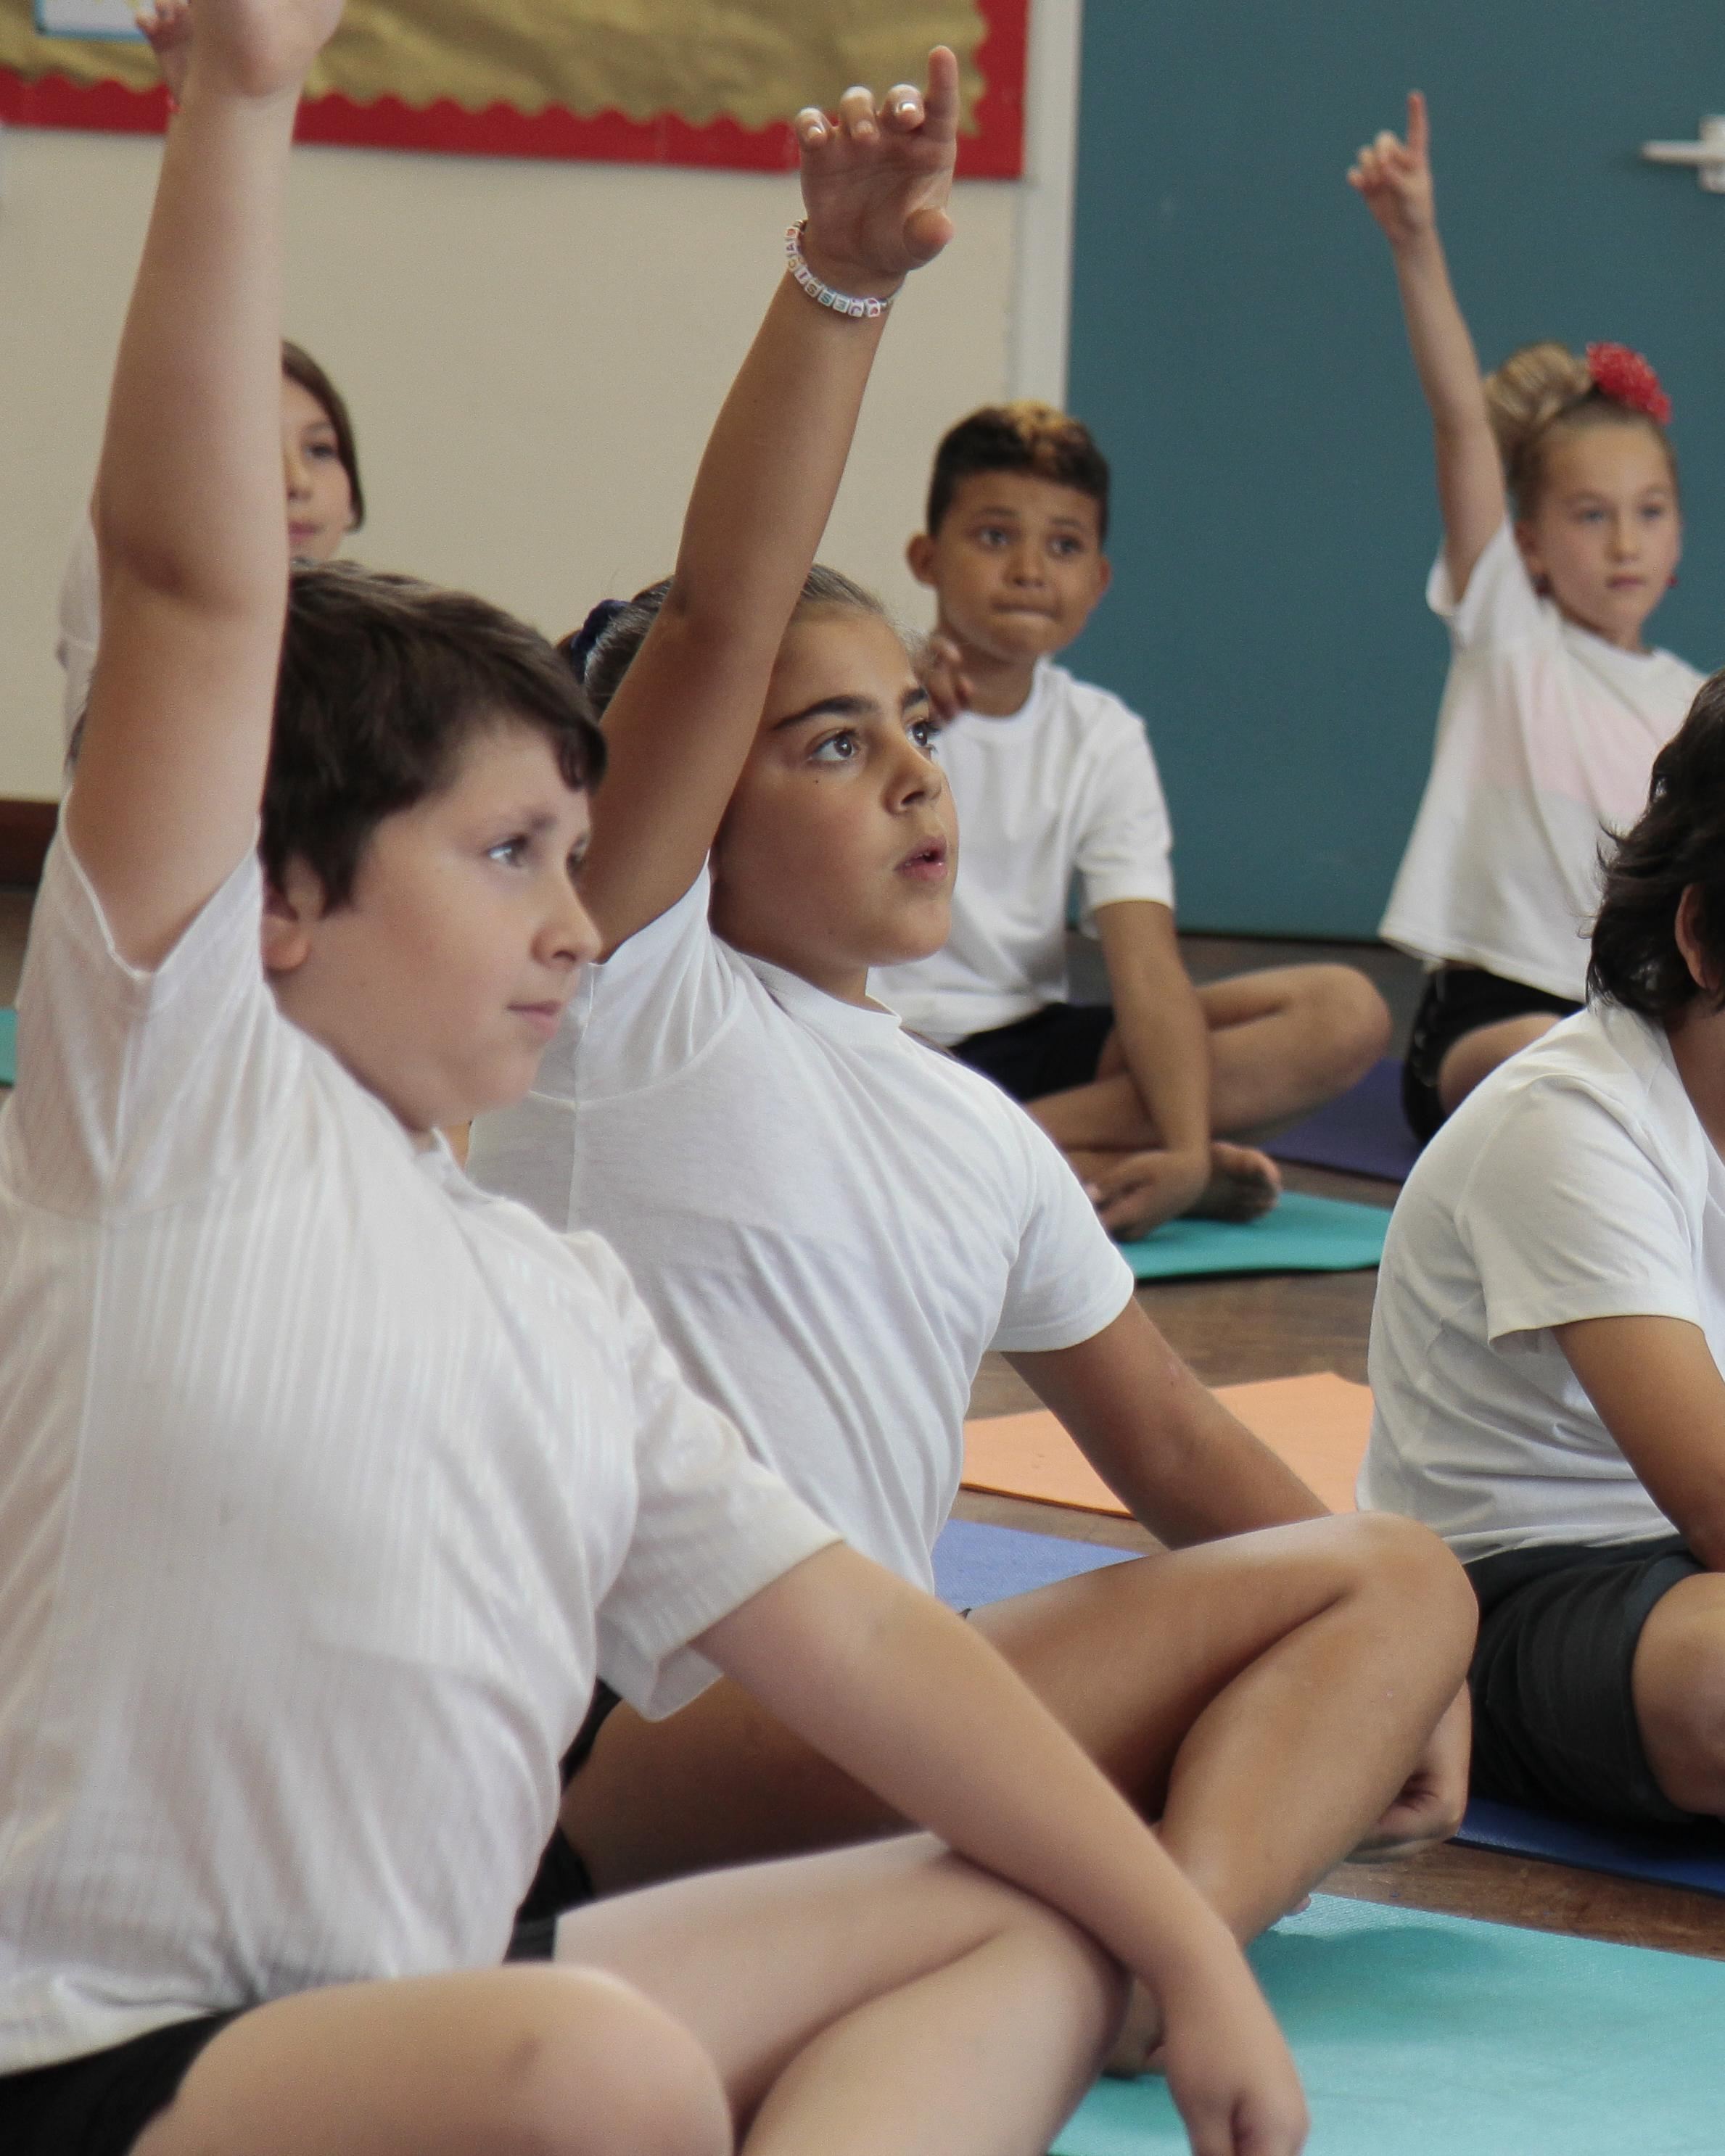 Teaching Yoga to Children with Autism - A Piece of Cake?